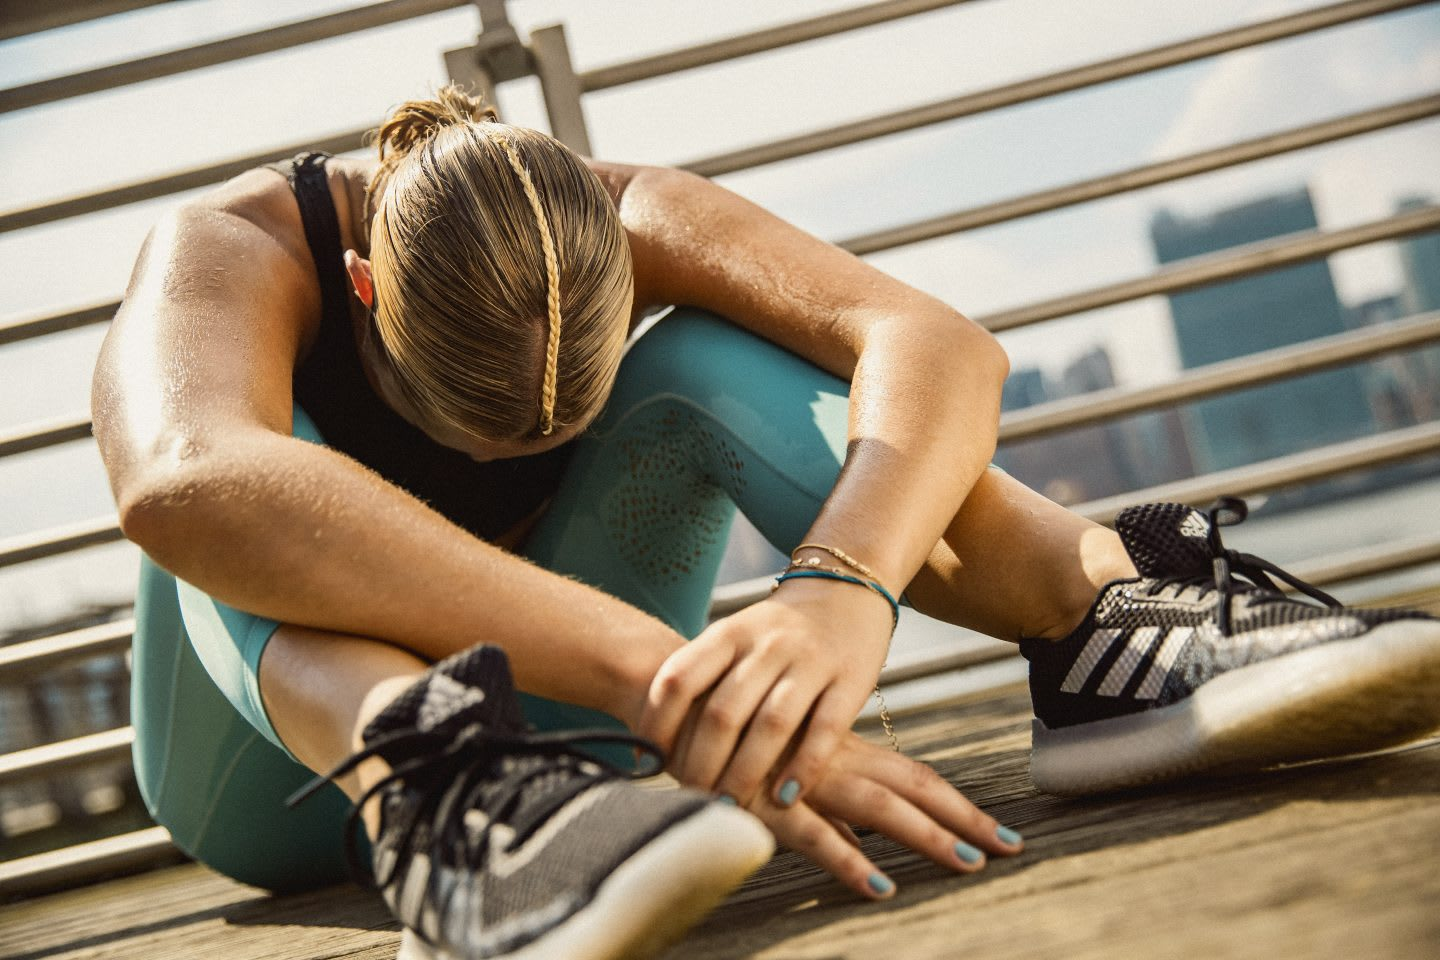 Woman wearing adidas shoes and adidas apparel sitting with head between legs resting and recovering after sports, tired, active, sport, lifestyle, mindset, GamePlan A